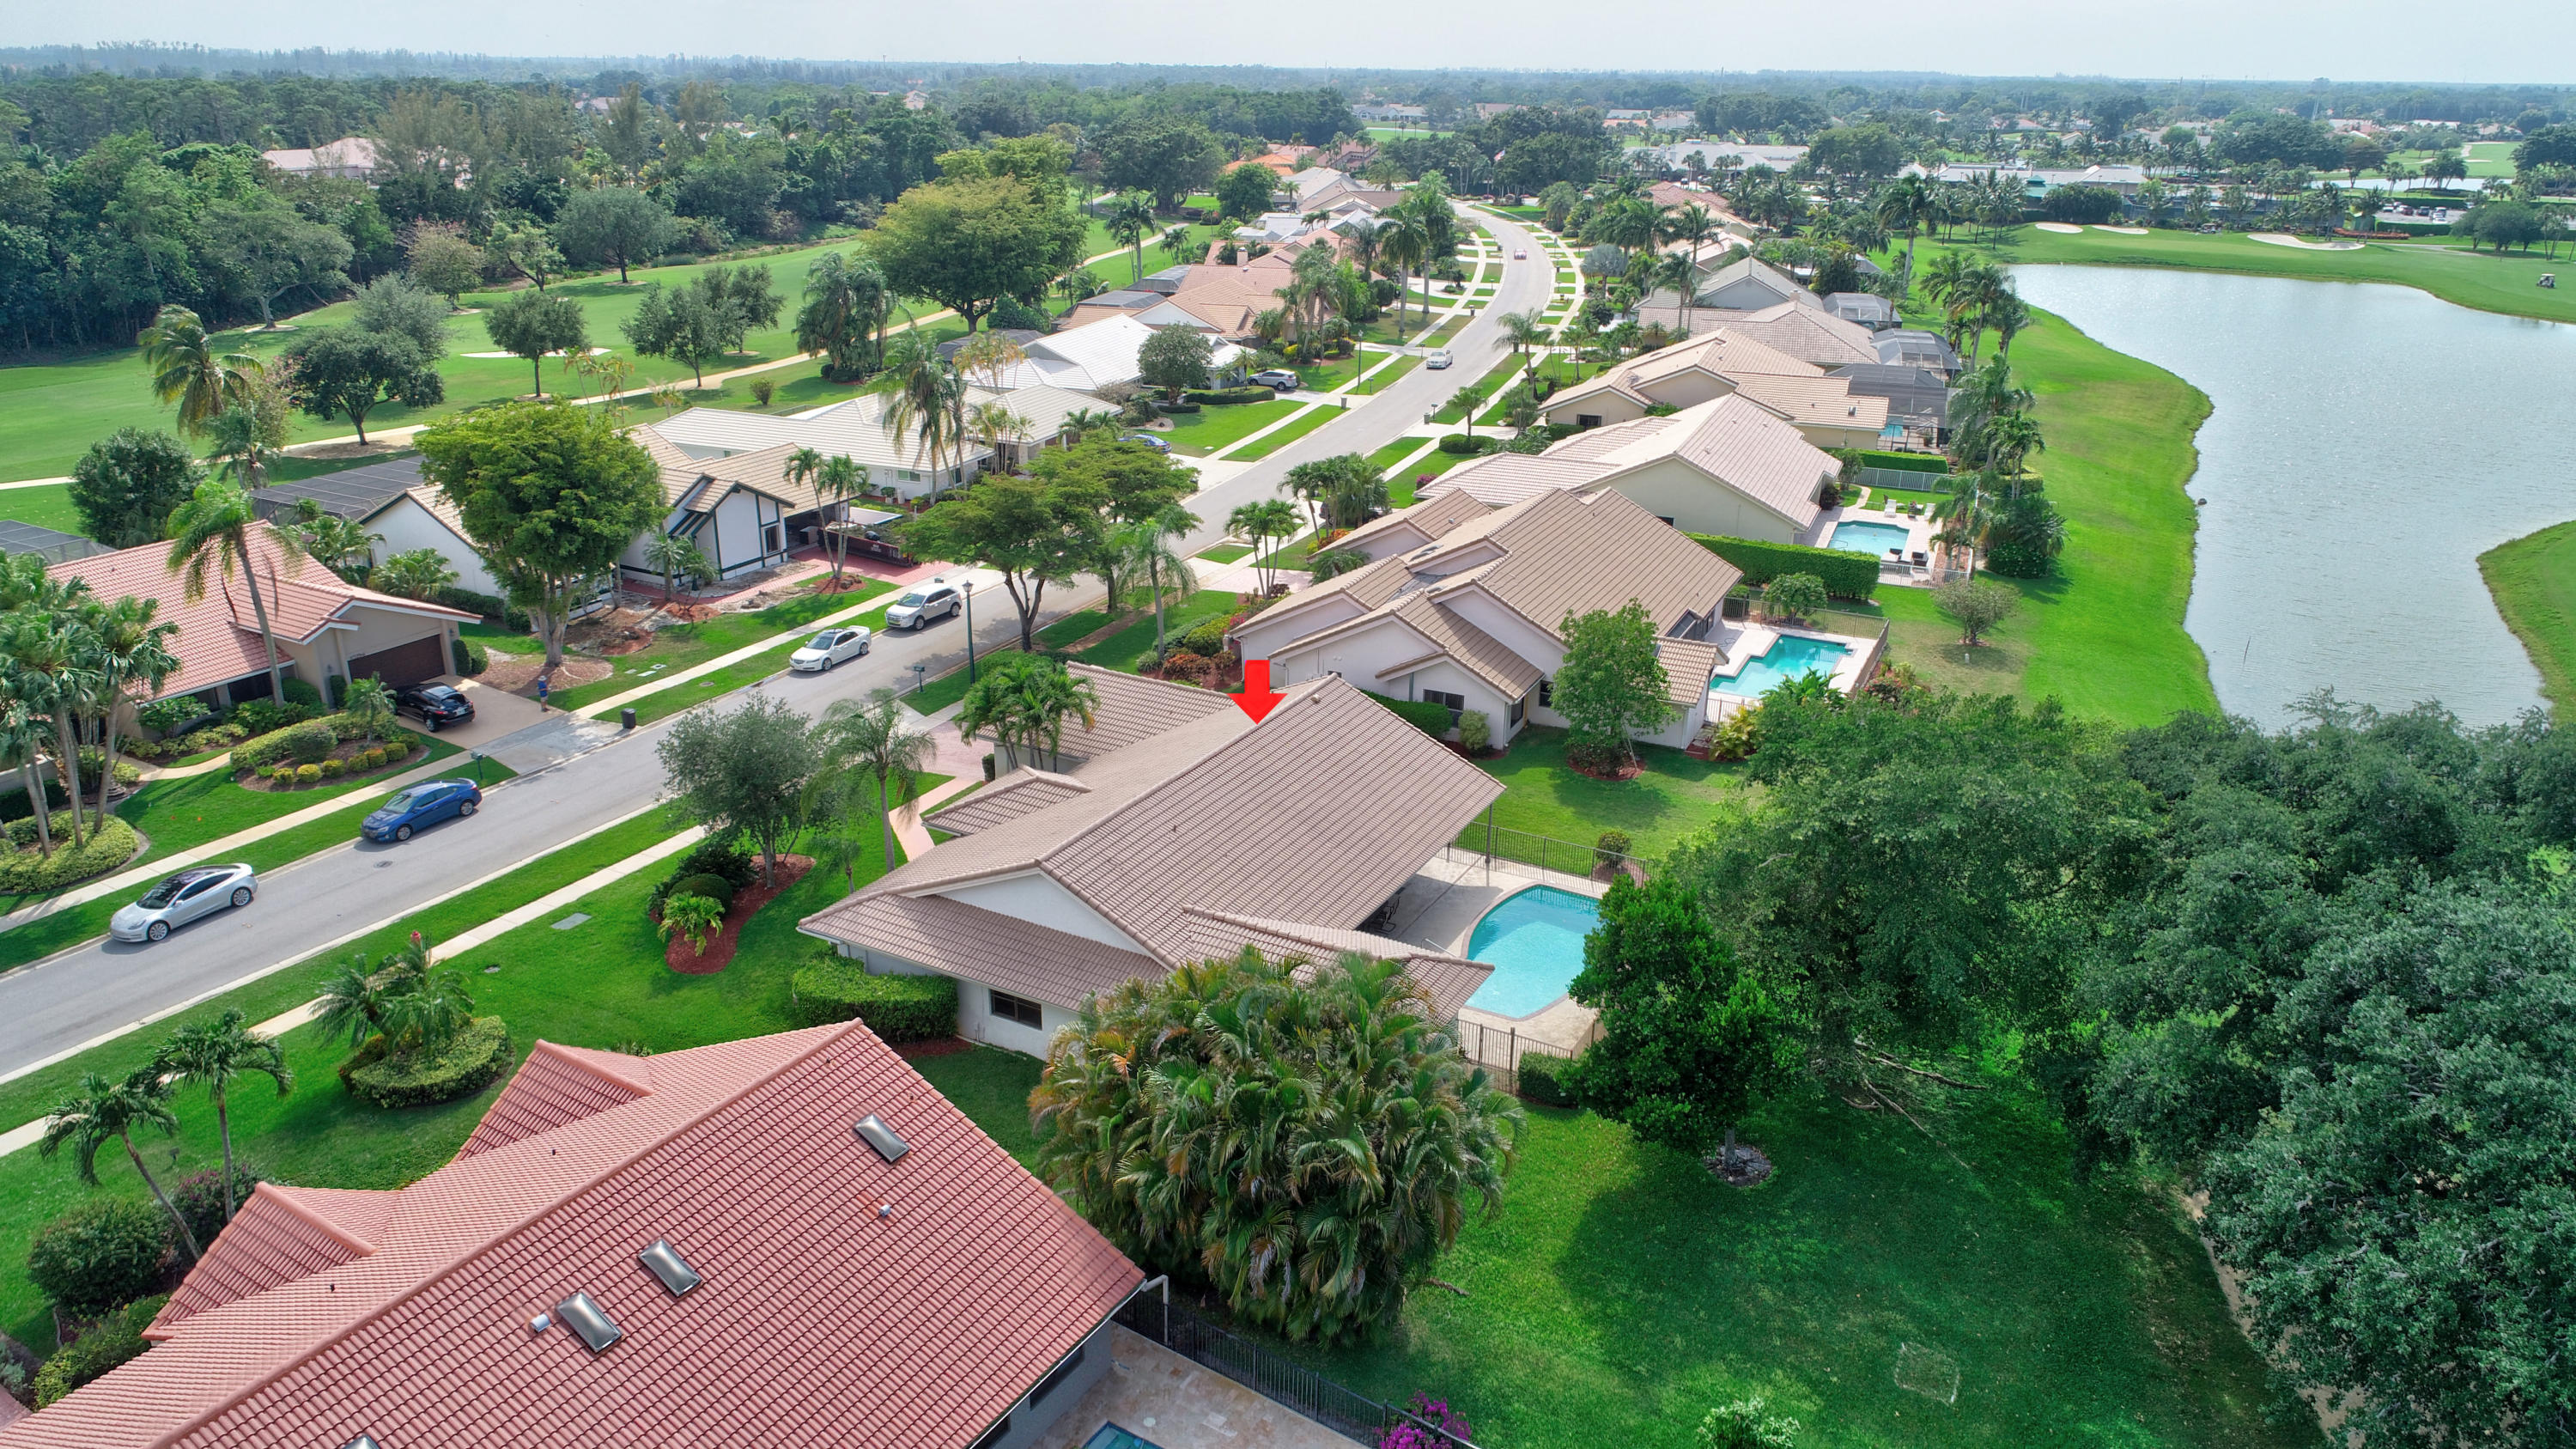 BOCA WOODS COUNTRY CLUB PH 1 LT 8 BLK 3